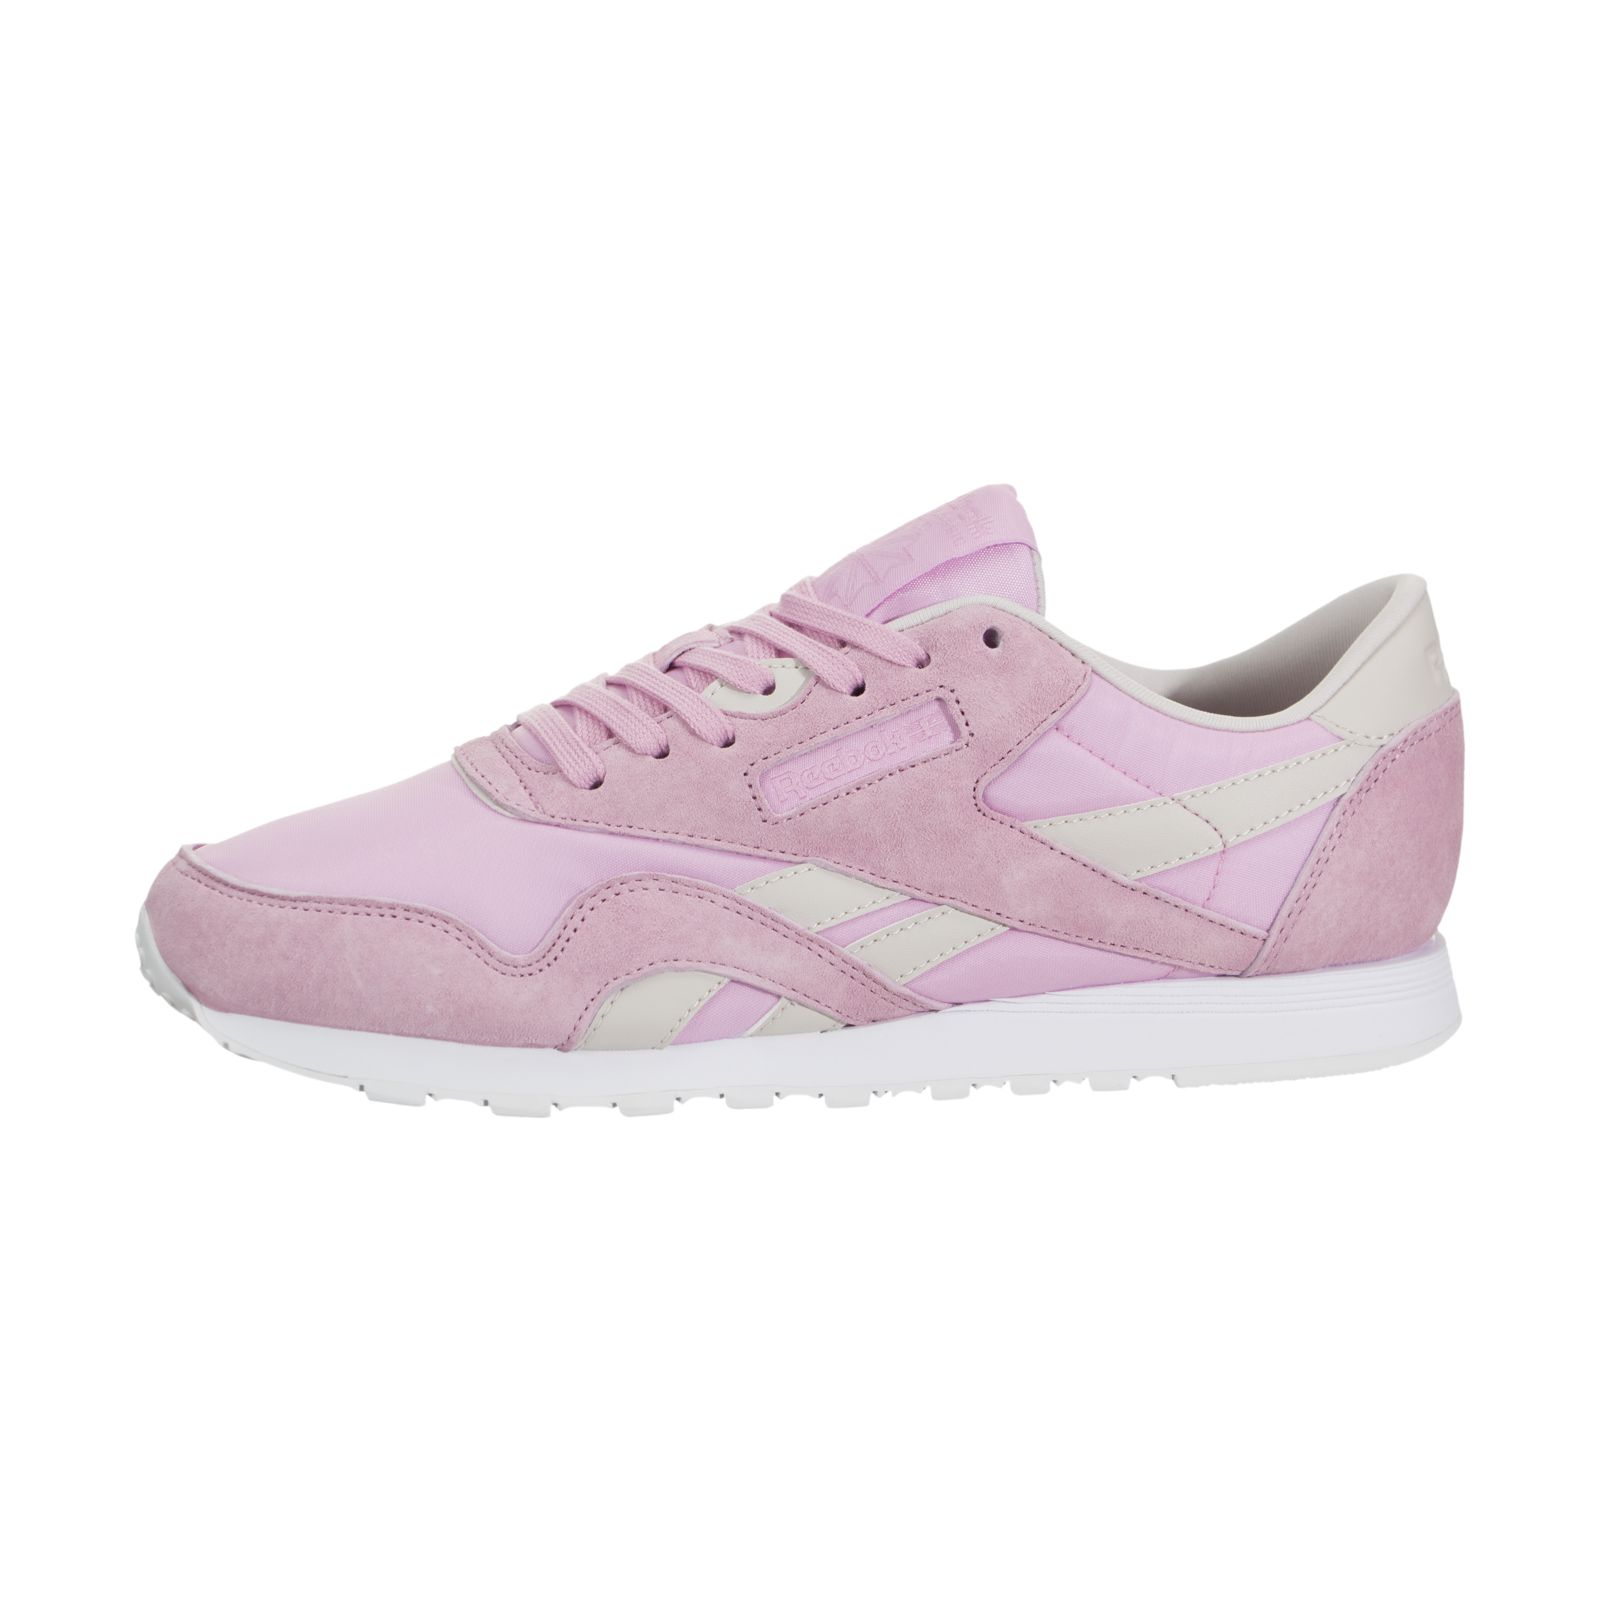 d8fac2fd5 Reebok Women's X Face Stockholm Classic Nylon Shoes Pink Vision ...